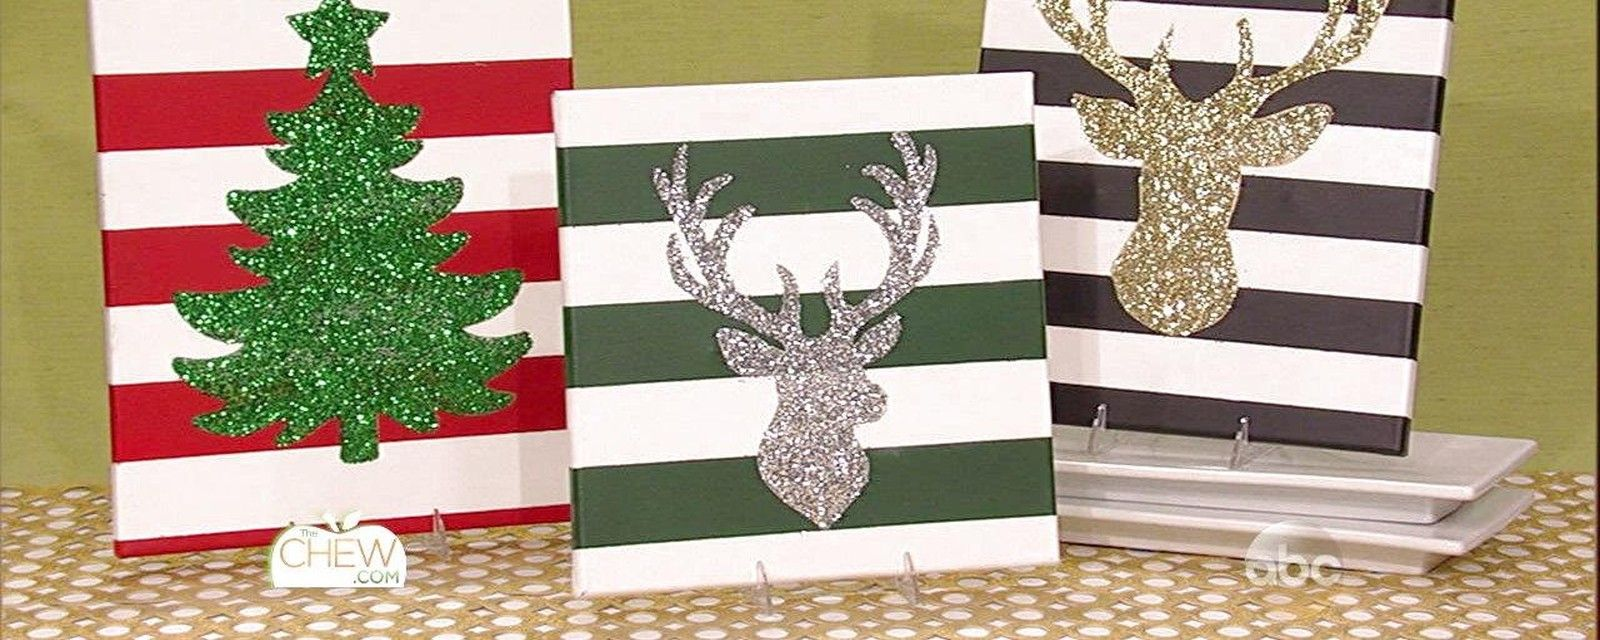 Diy christmas decorations glitter snowflake canvases